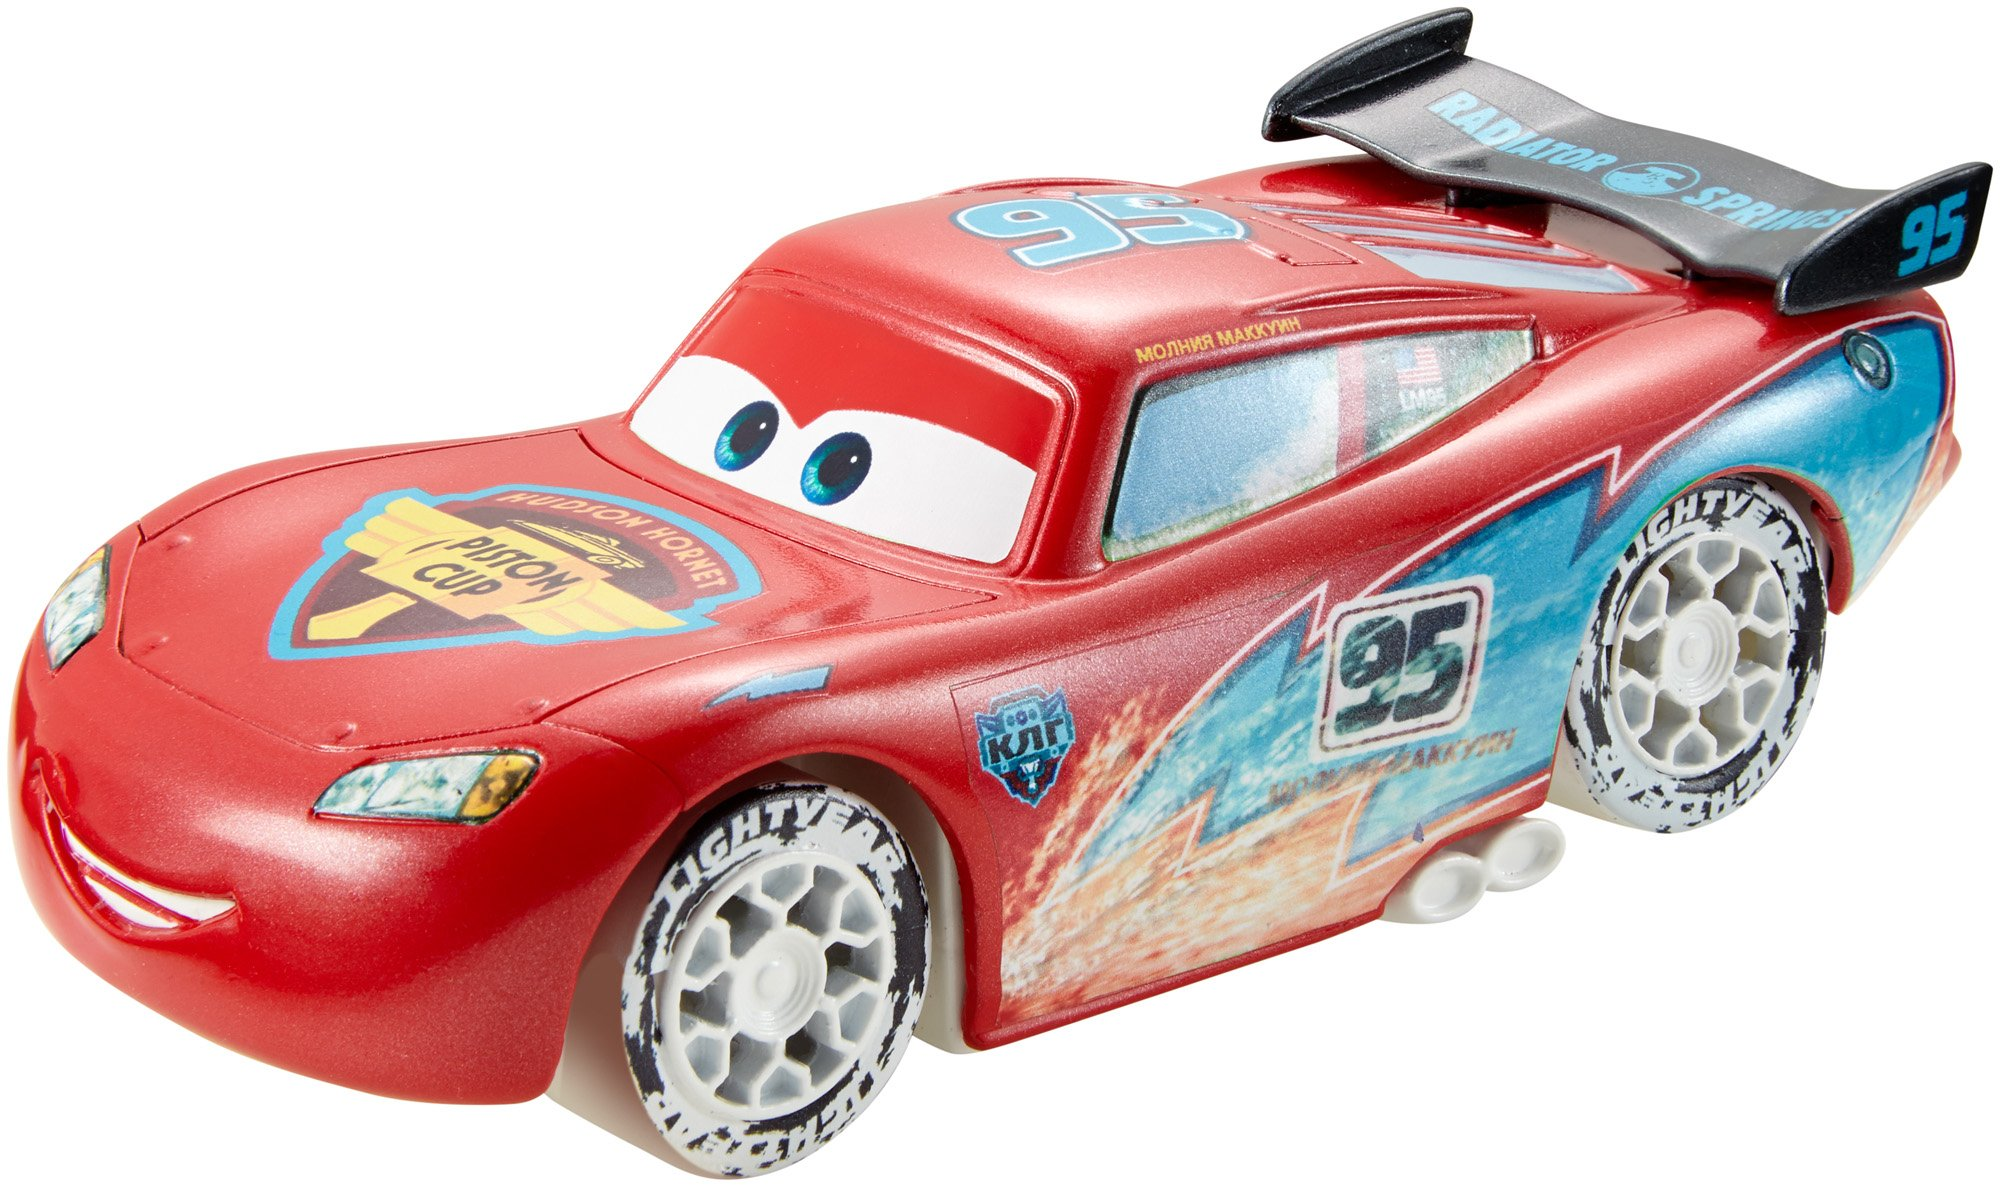 Disney/Pixar Cars Ice Drifters 1:43 Scale Pullback Drifter Vehicle, Lightning McQueen